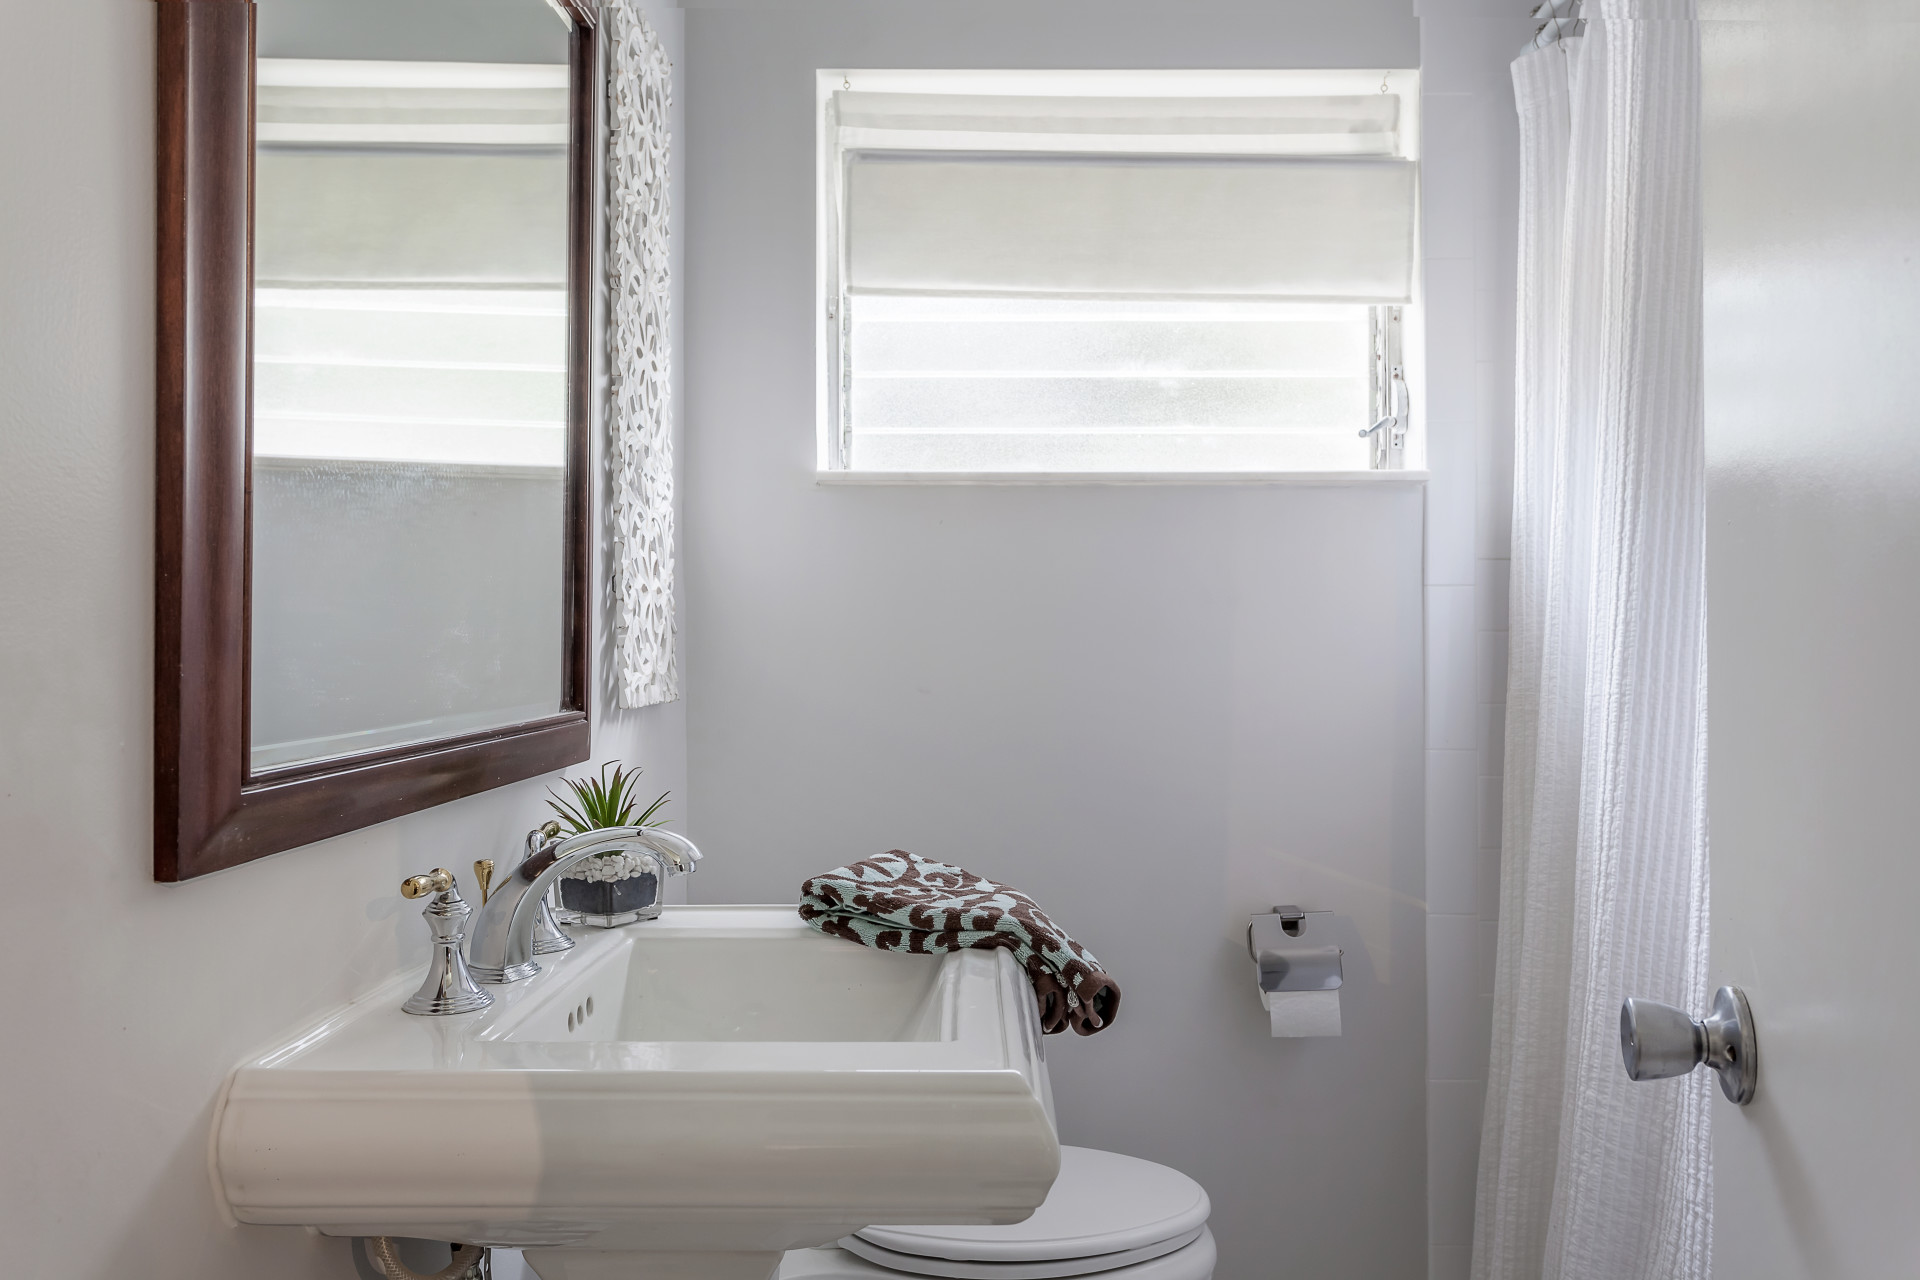 Guest bathroom cardinal designs and consulting inc for Bathroom design consultant